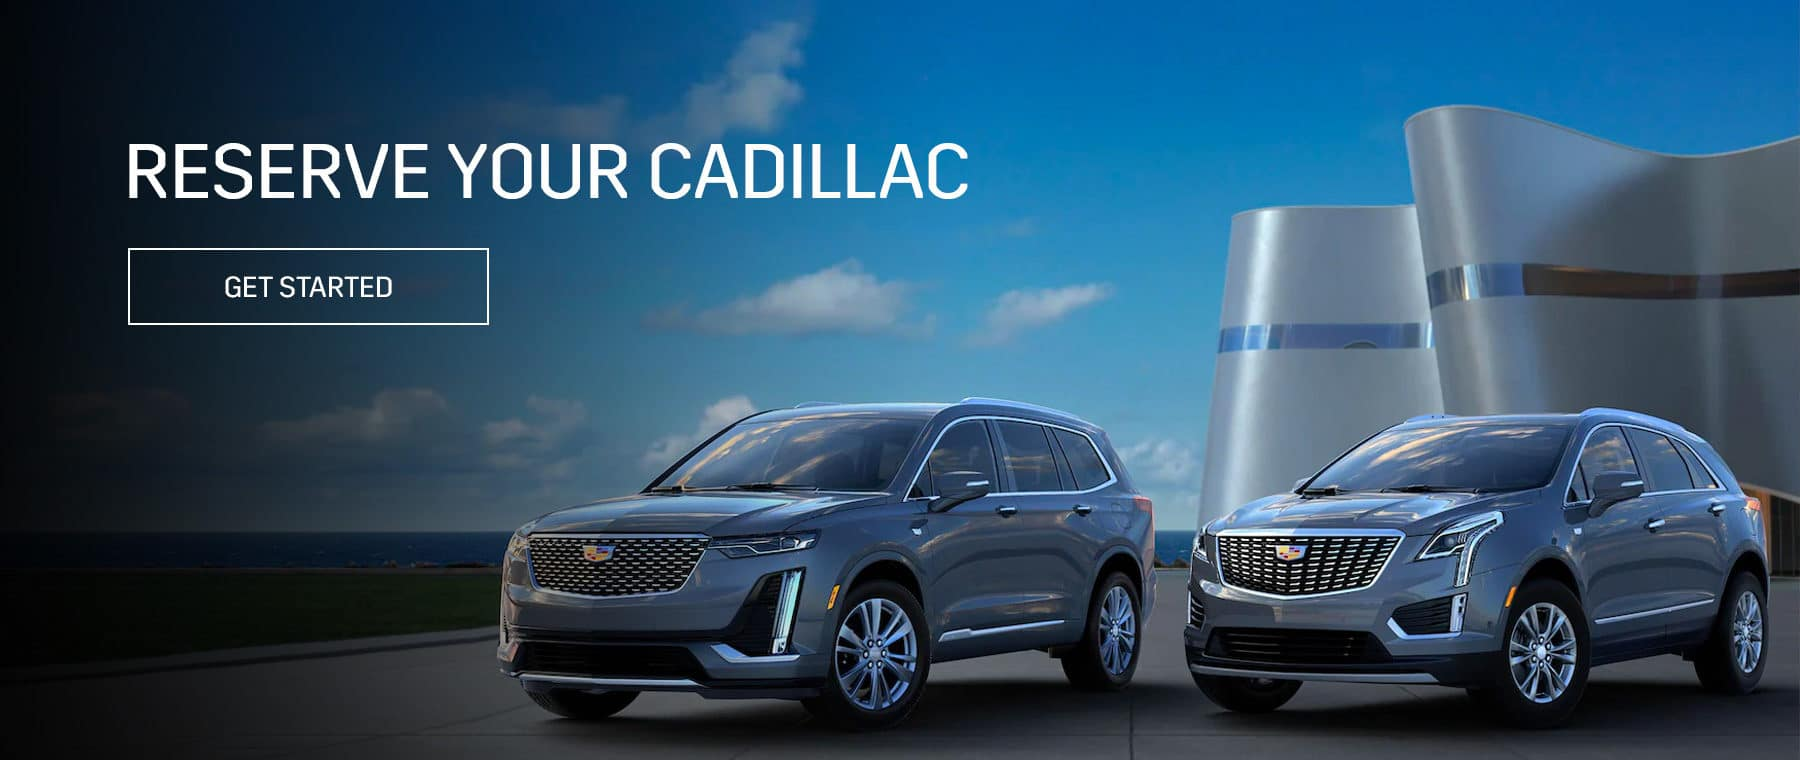 Reserve Your Cadillac With Quantrell Today!